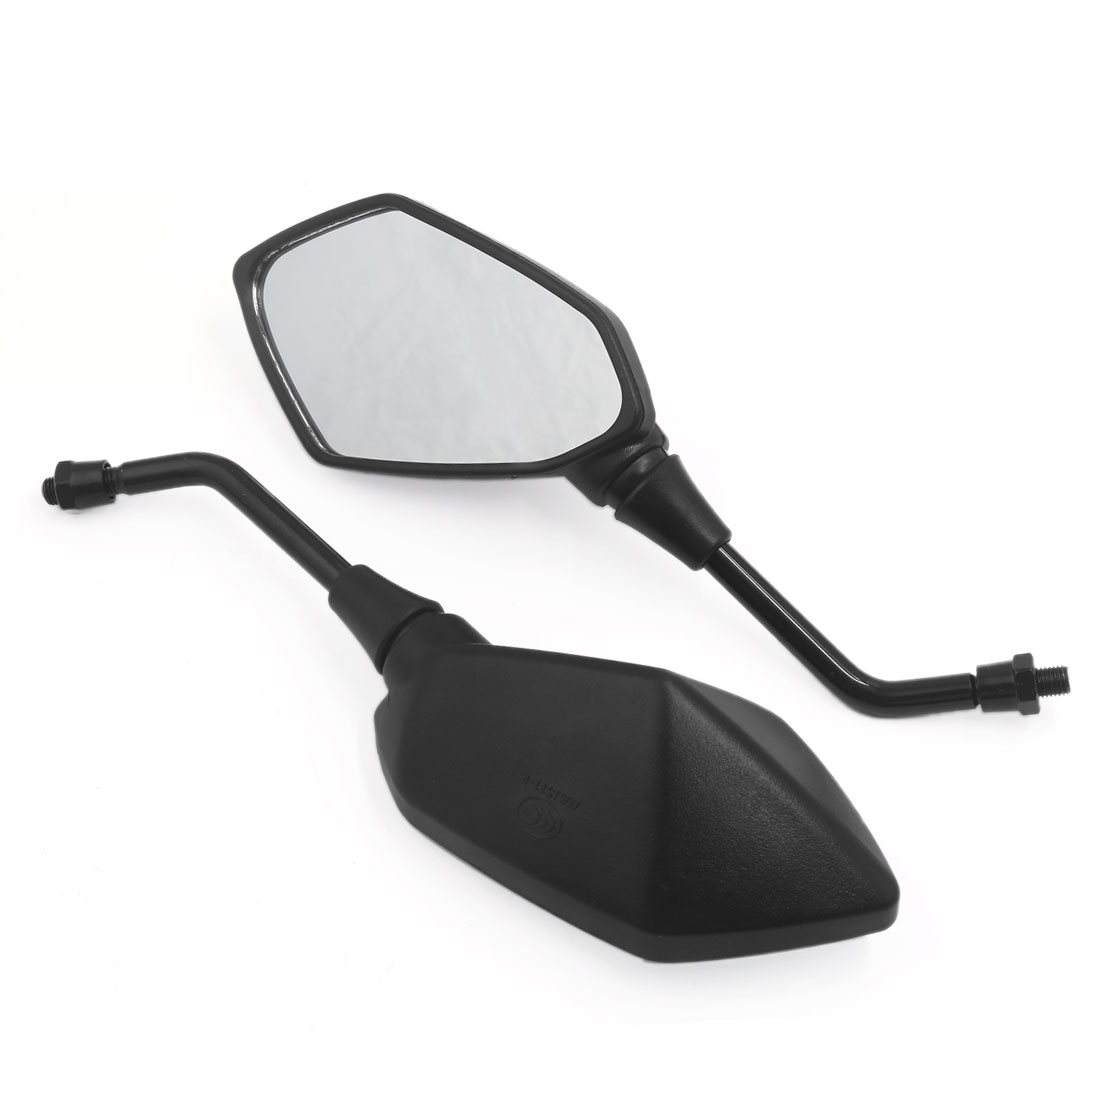 2pcs Black 10mm Motorcycle Rearview Mirrors For Cruiser Chopper Street Bike